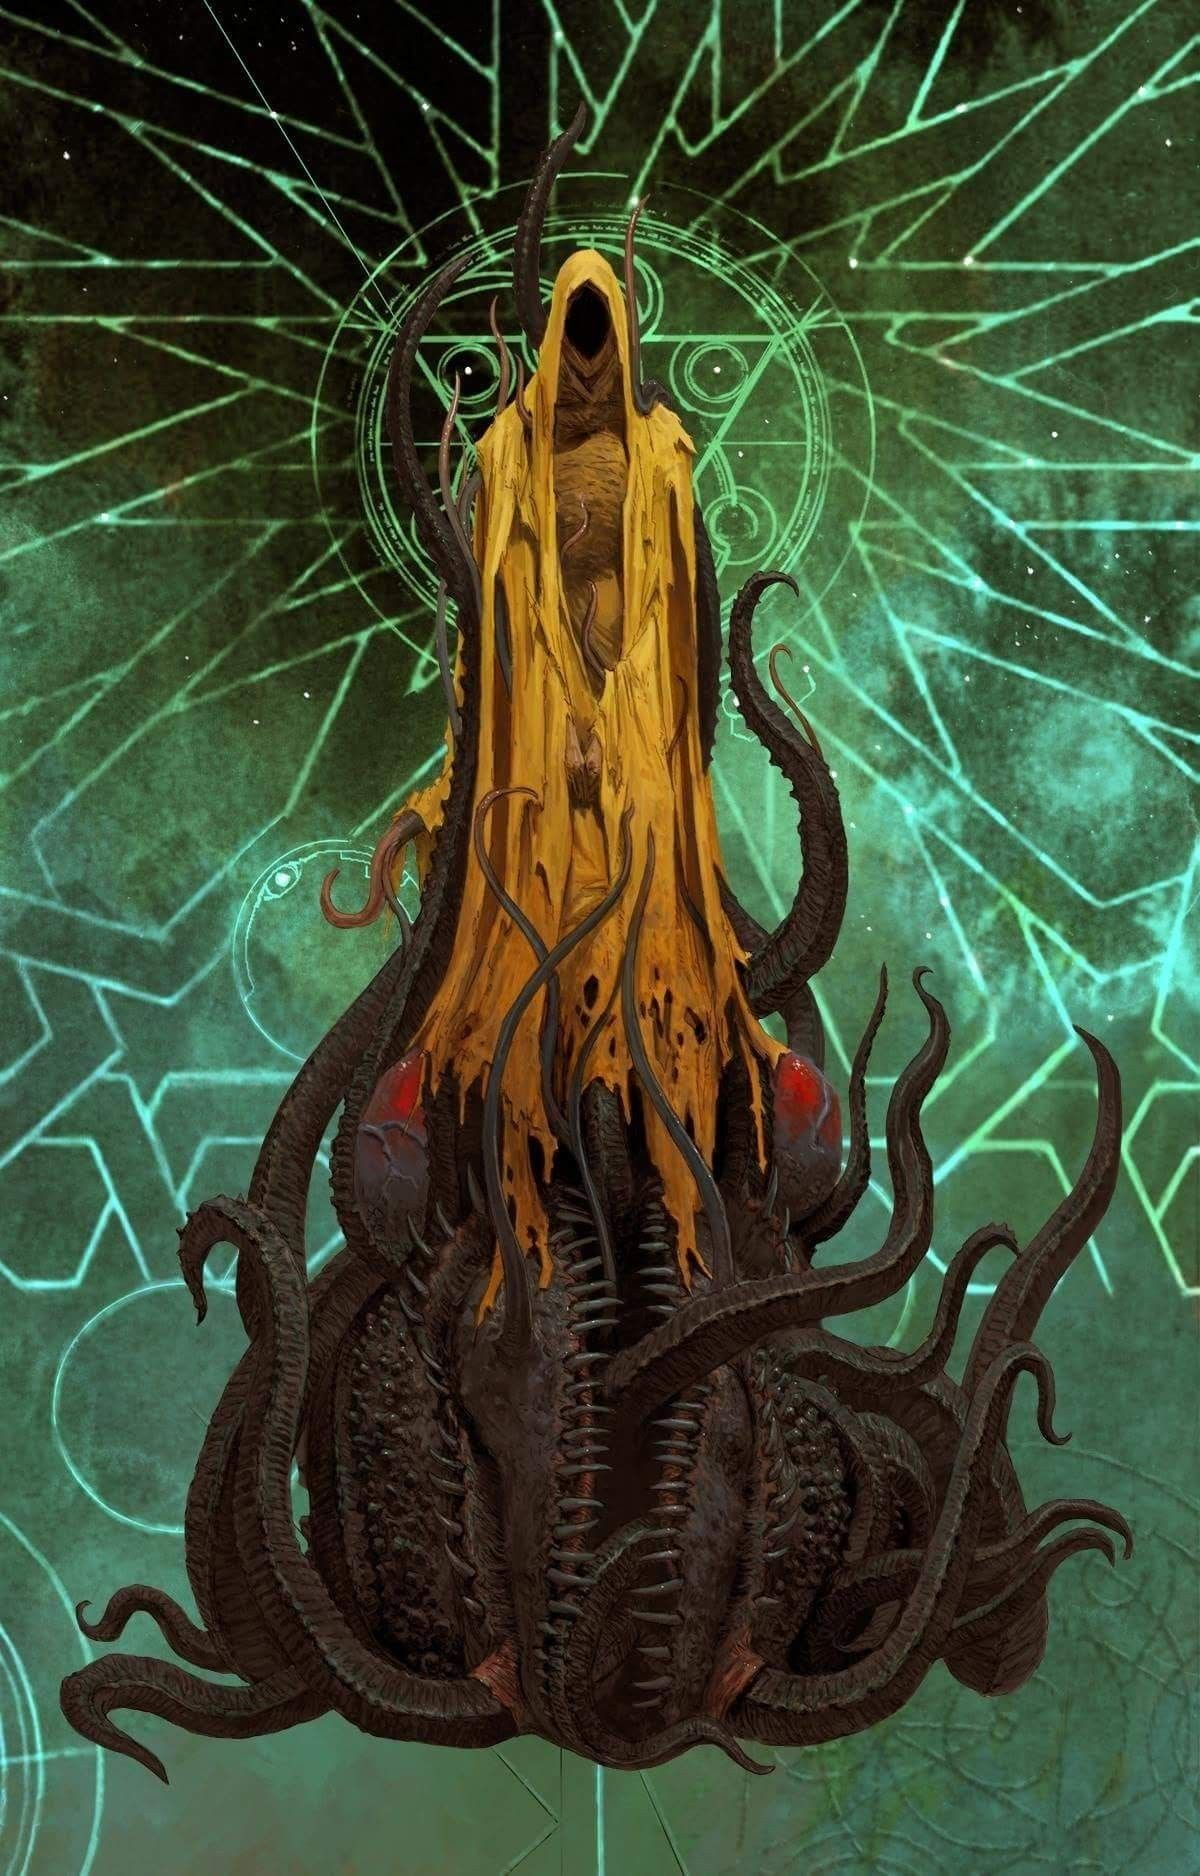 Pin By Scott Baseler On Carcosa Hastur And The King In Yellow